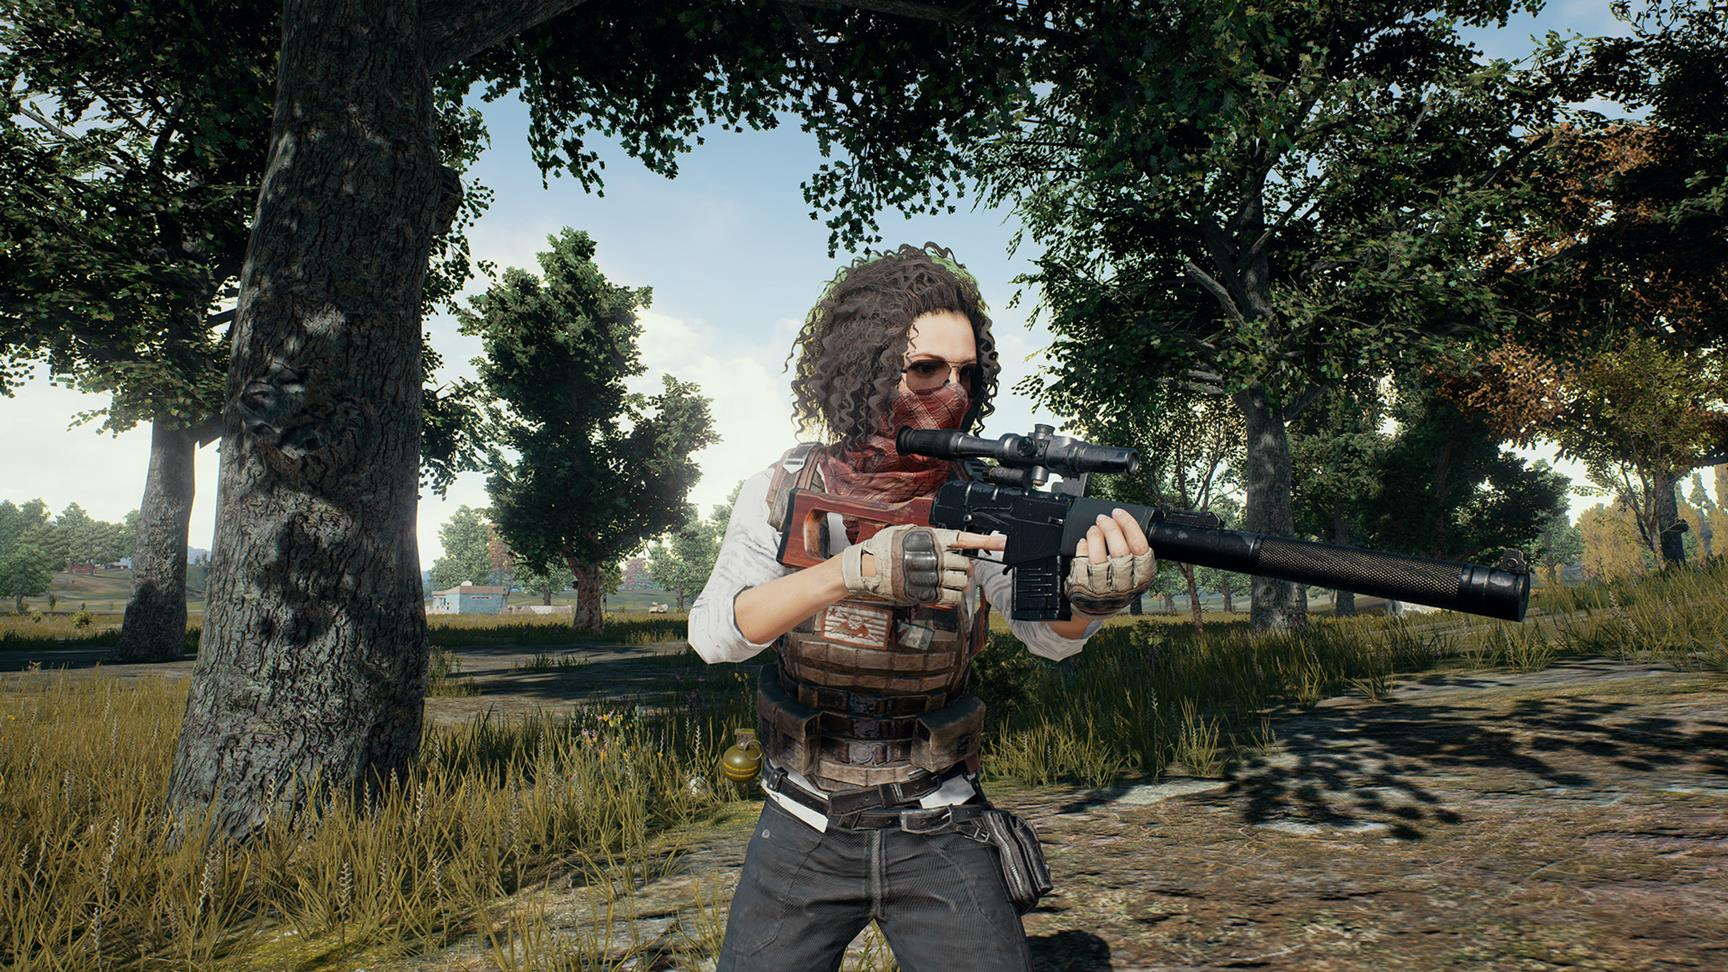 player_unknowns_battlegrounds_vss_1